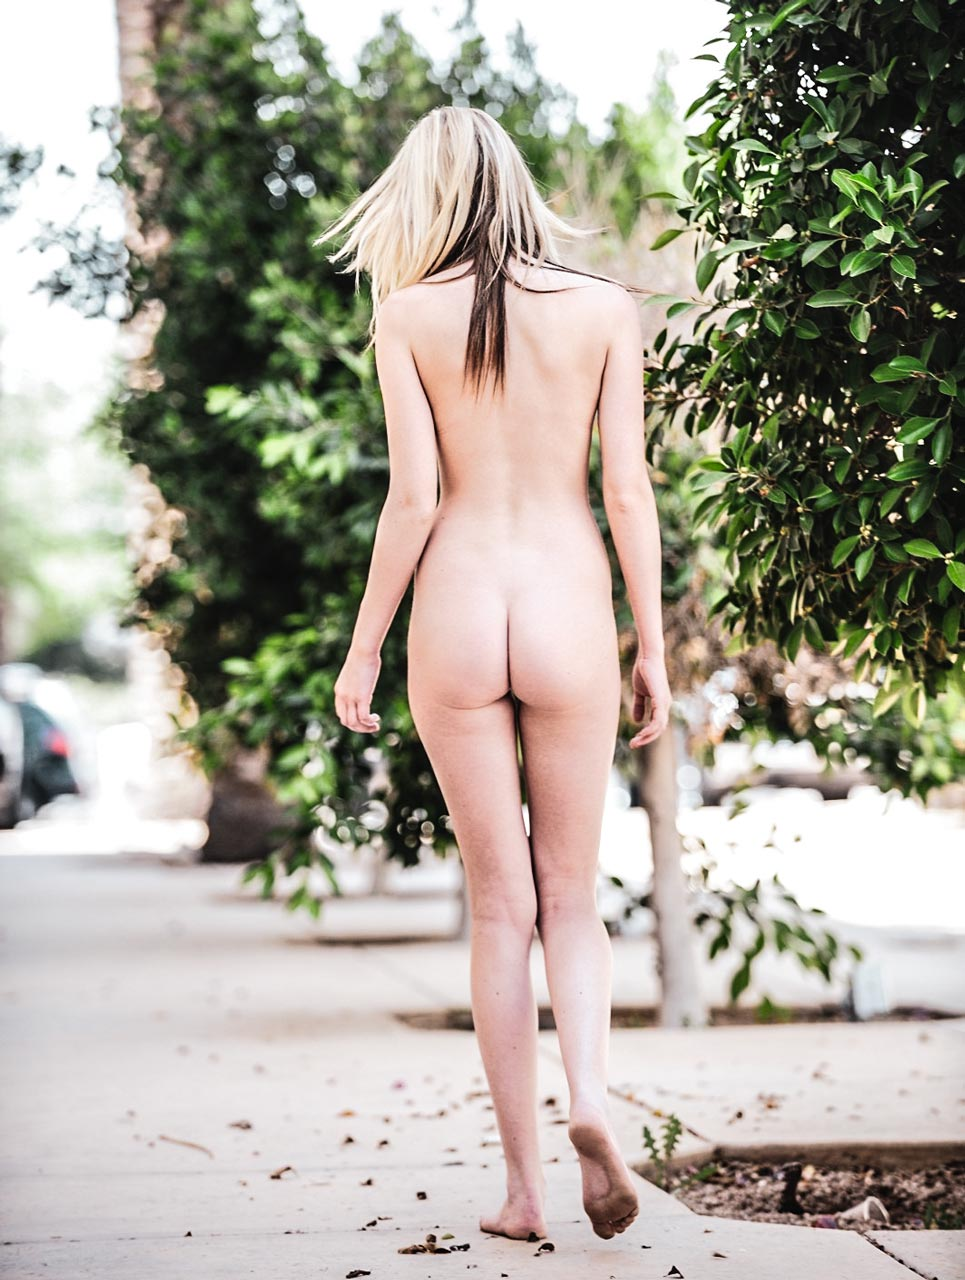 Nude girl walking in the street flashing her shaved pussy in public. Kiley for FTVGirls.